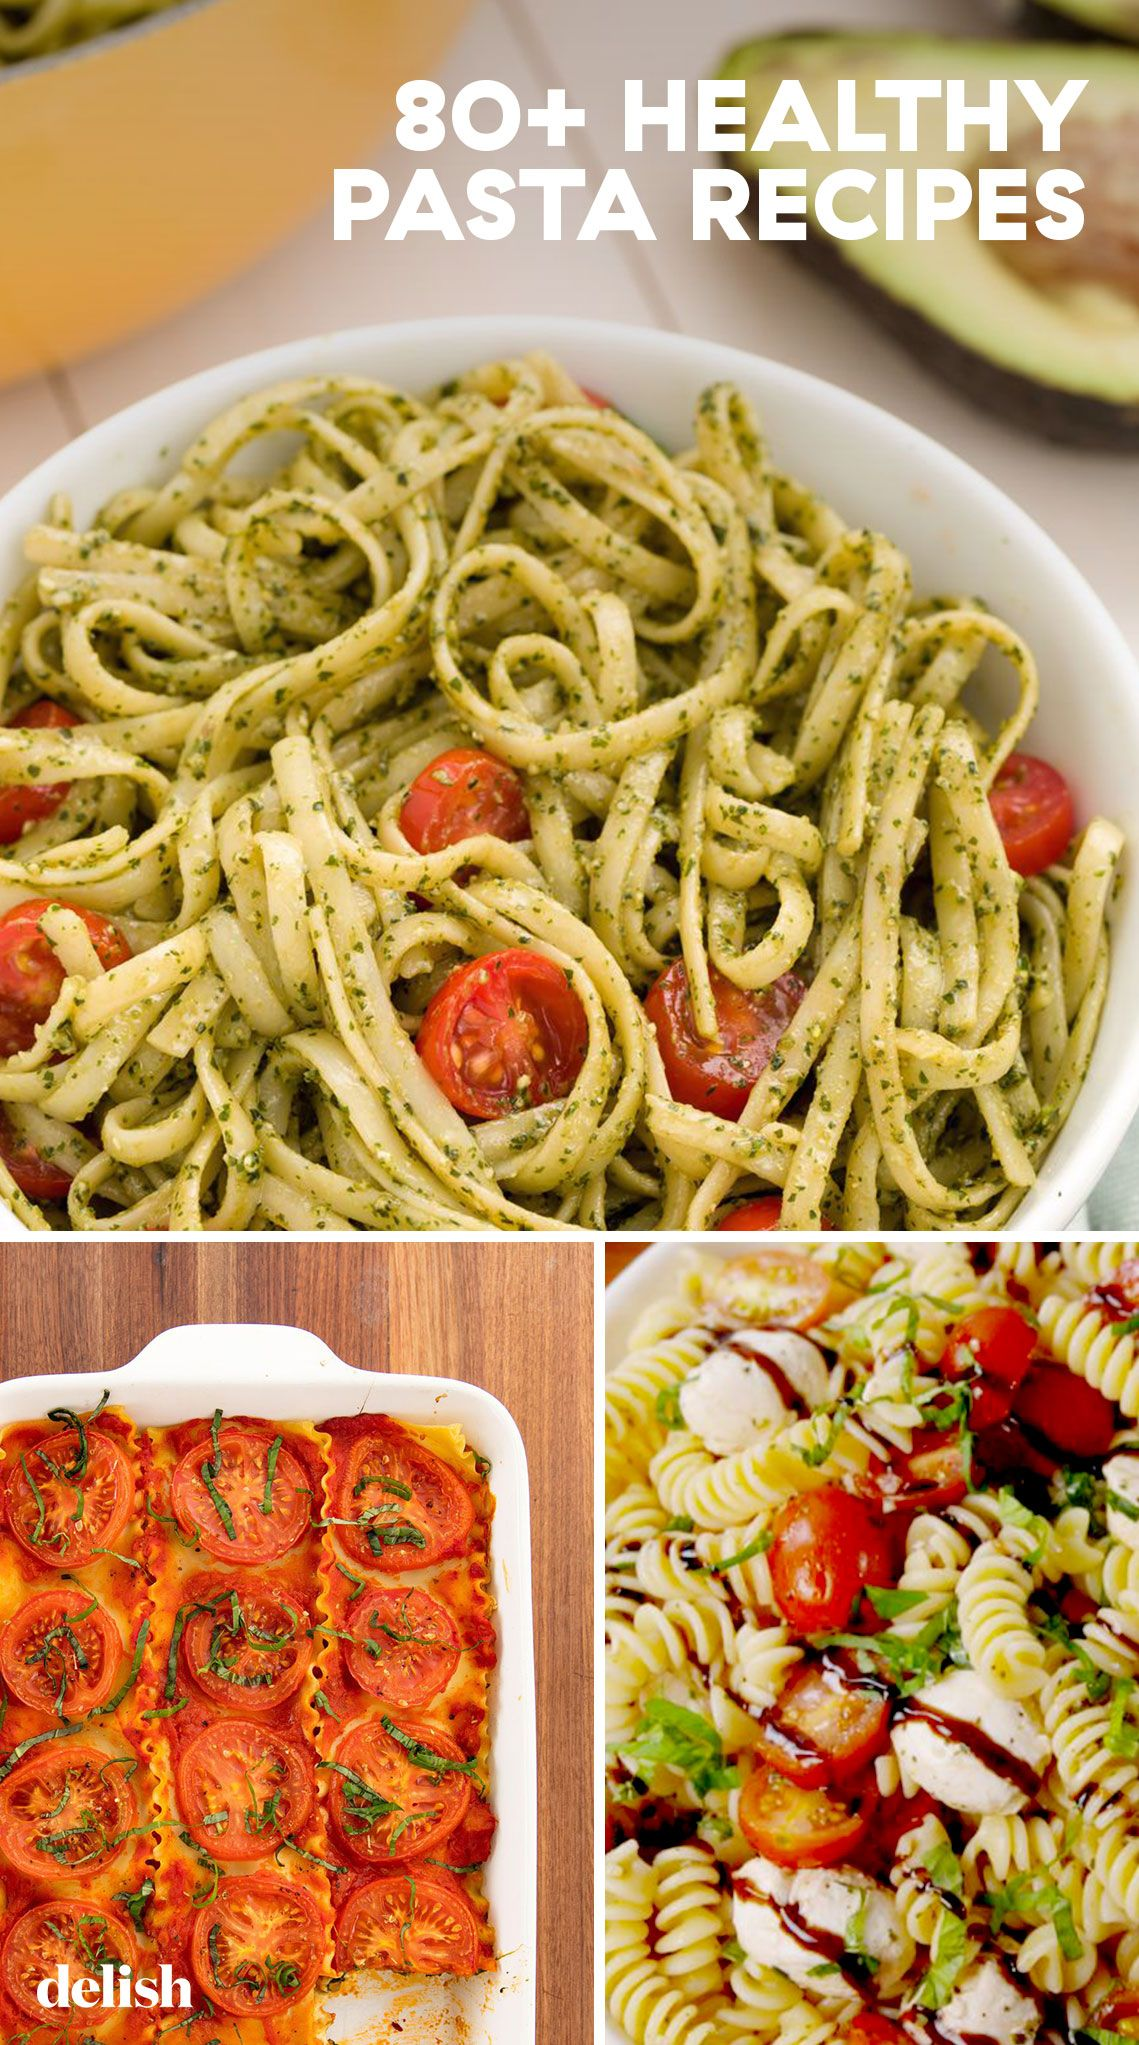 The 84 Most Delish Skinny Pastas Healthy Pasta Dishes Healthy Pasta Recipes Clean Eating Easy Healthy Pasta Recipes